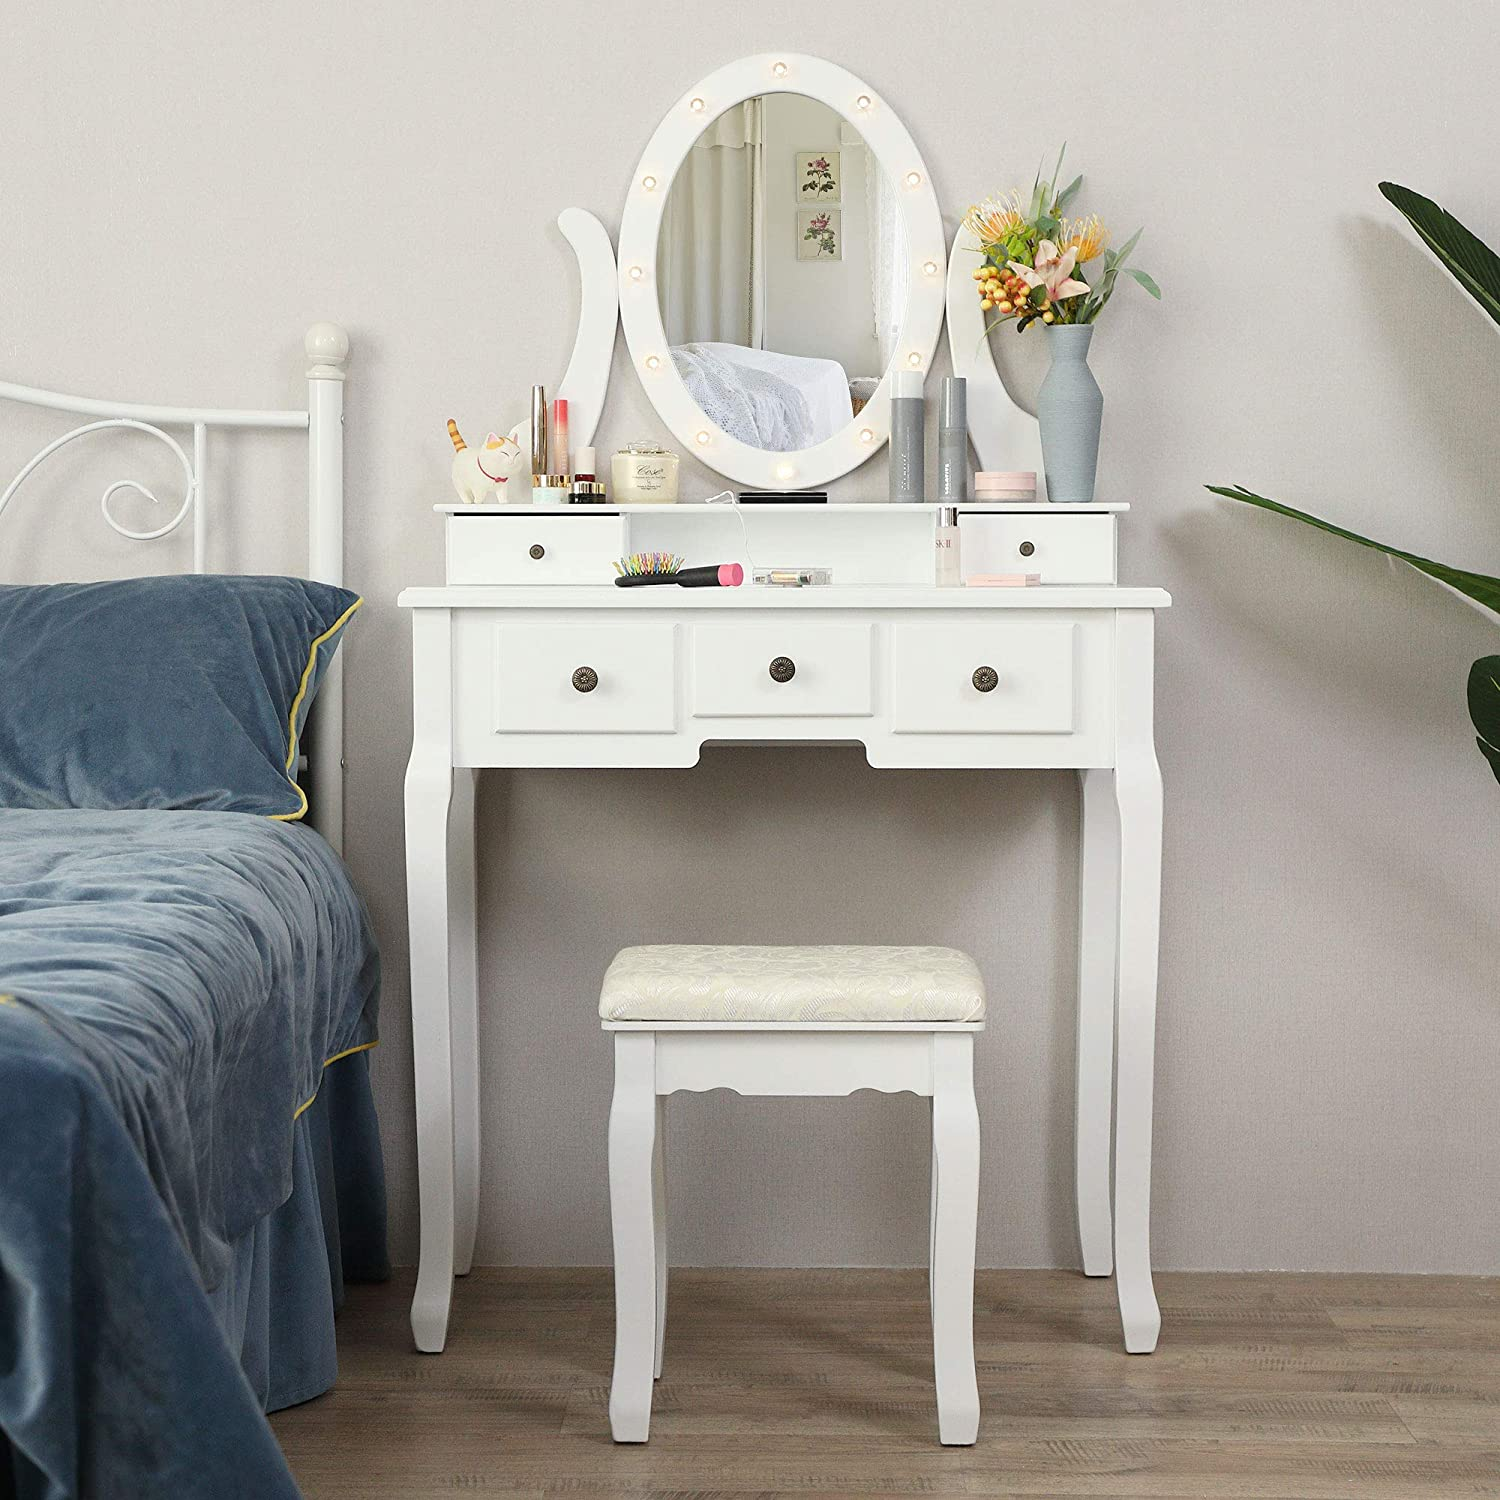 JAXSUNNY Vanity Table Set w/ 12 LED Bulbs & Cushioned Stool, Makeup Dressing Table w/Lighting Mirror & 5 Drawers, Removeable 360° Rotating Mirror, Modern Writing Desk for Home Bedroom, White